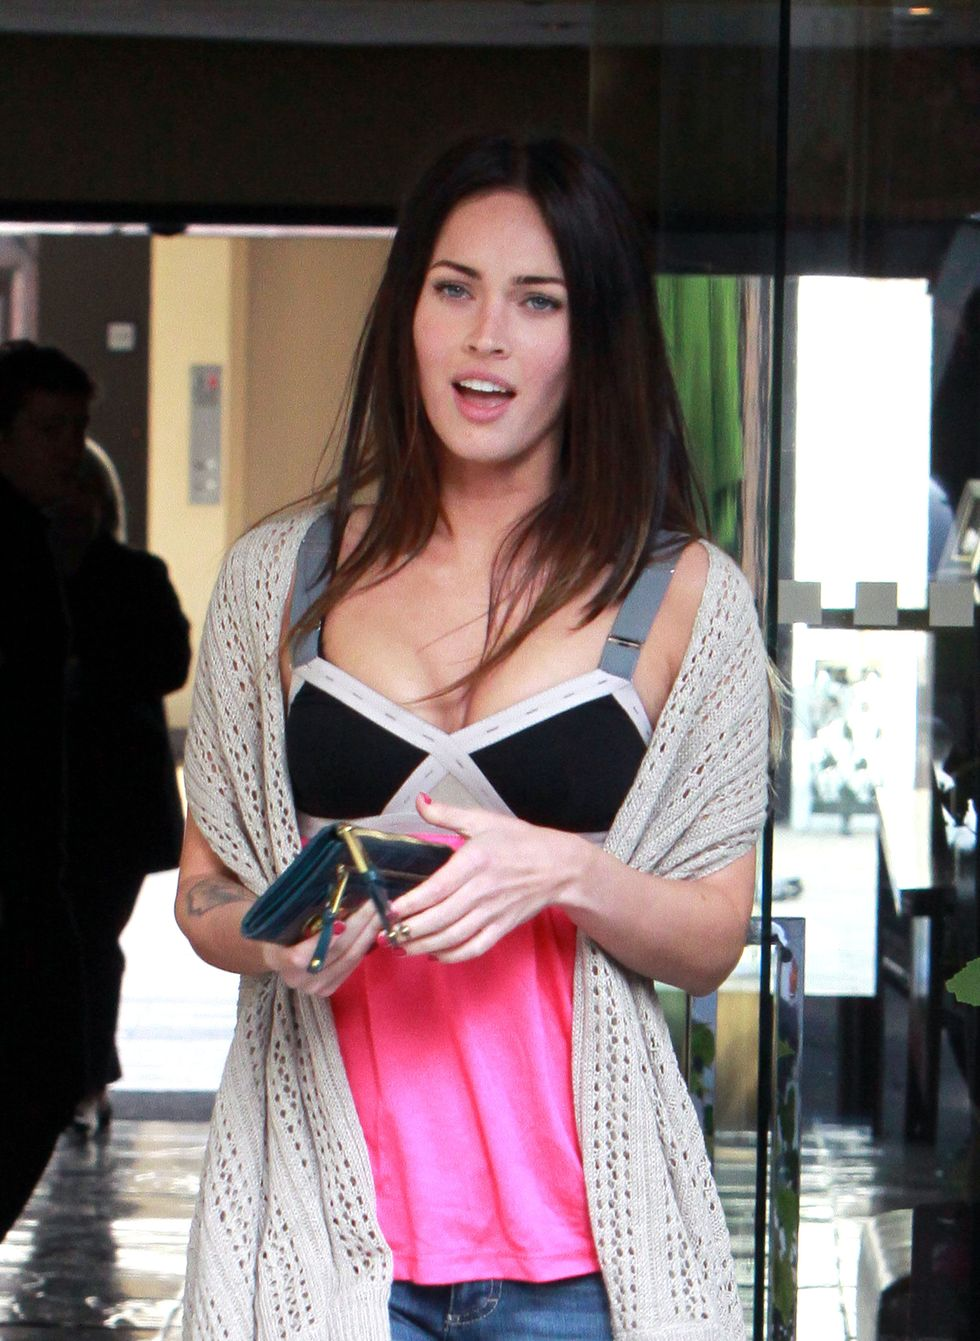 megan-fox-at-the-sunset-marquis-hotel-in-hollywood-01